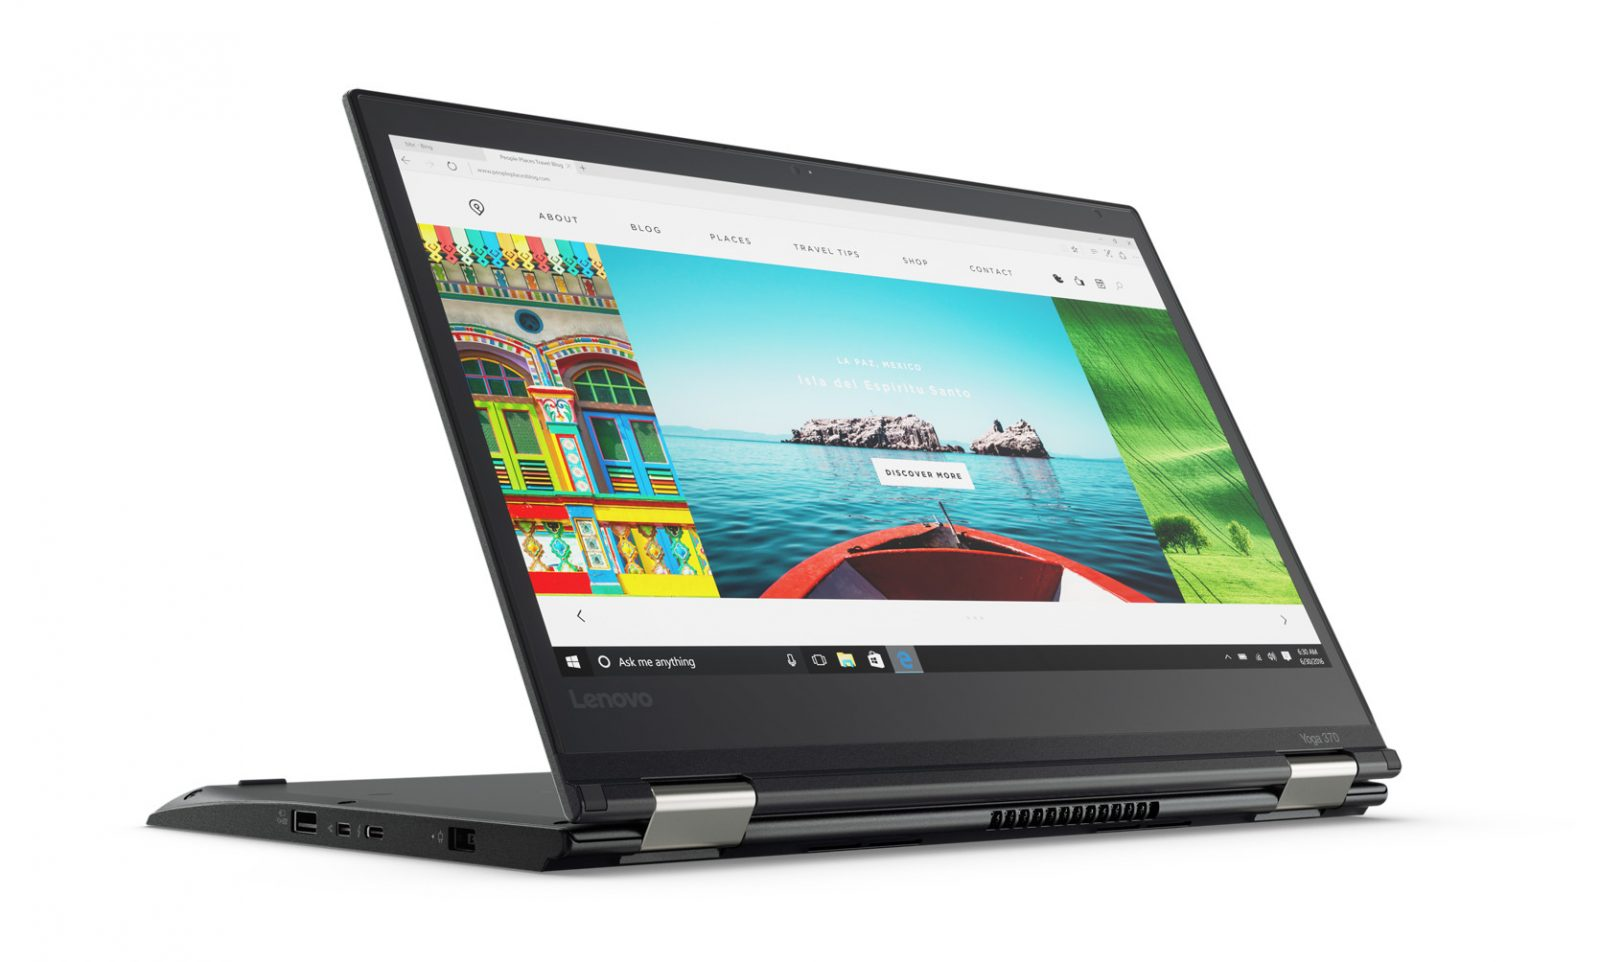 Lenovo Thinkpad 2017 Line-up with Kaby Lake and Intel Optane Solutions